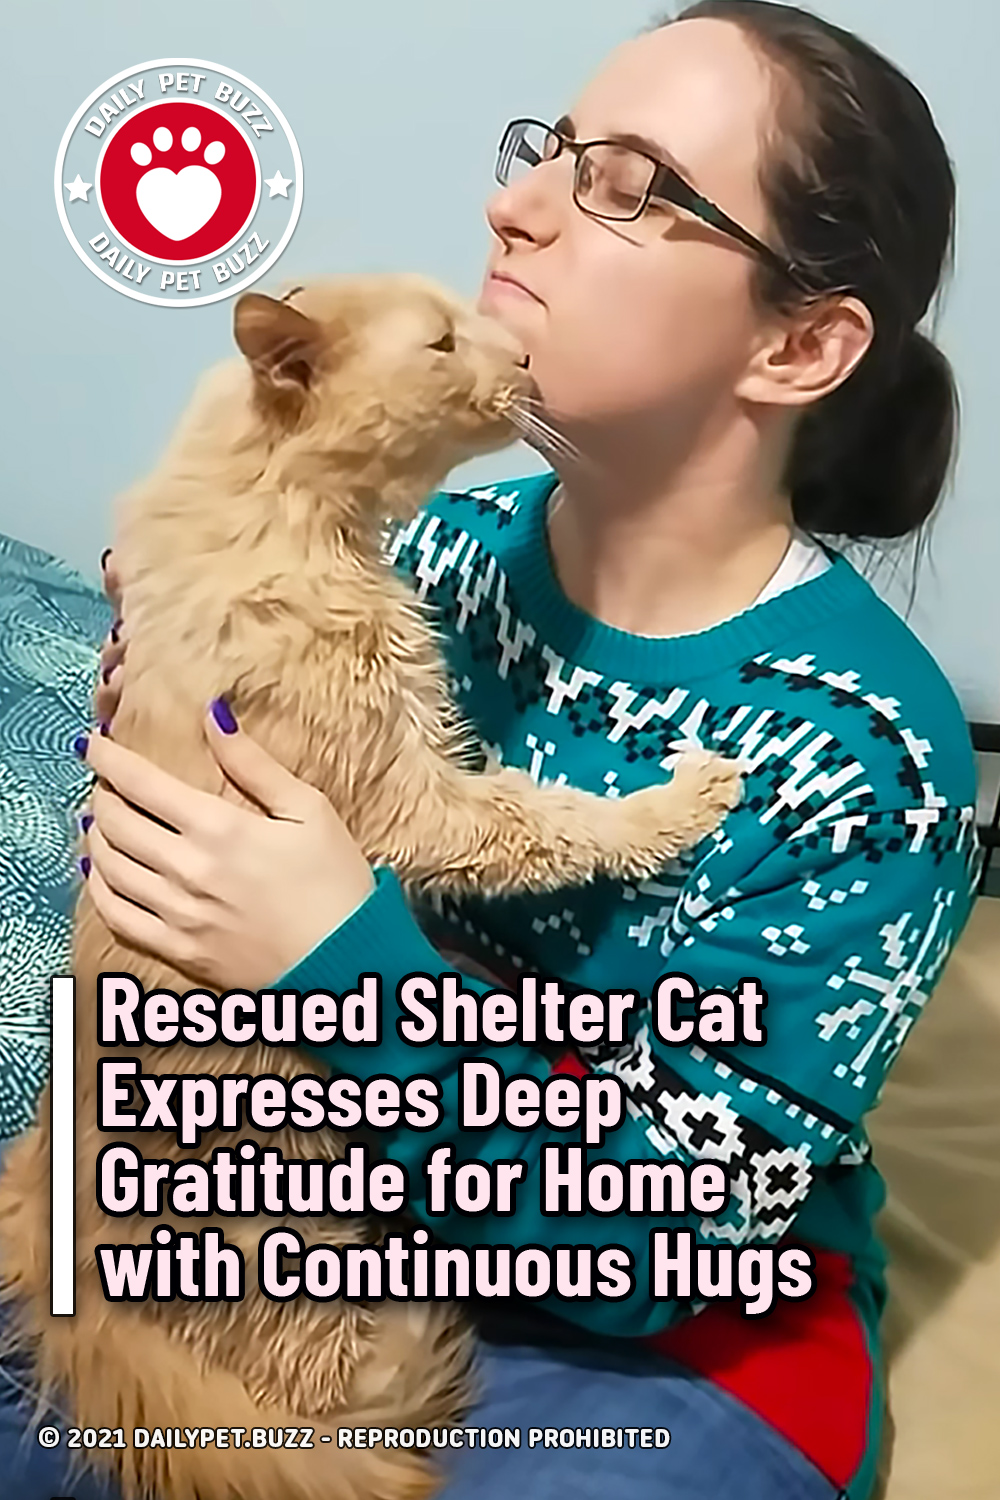 Rescued Shelter Cat Expresses Deep Gratitude for Home with Continuous Hugs